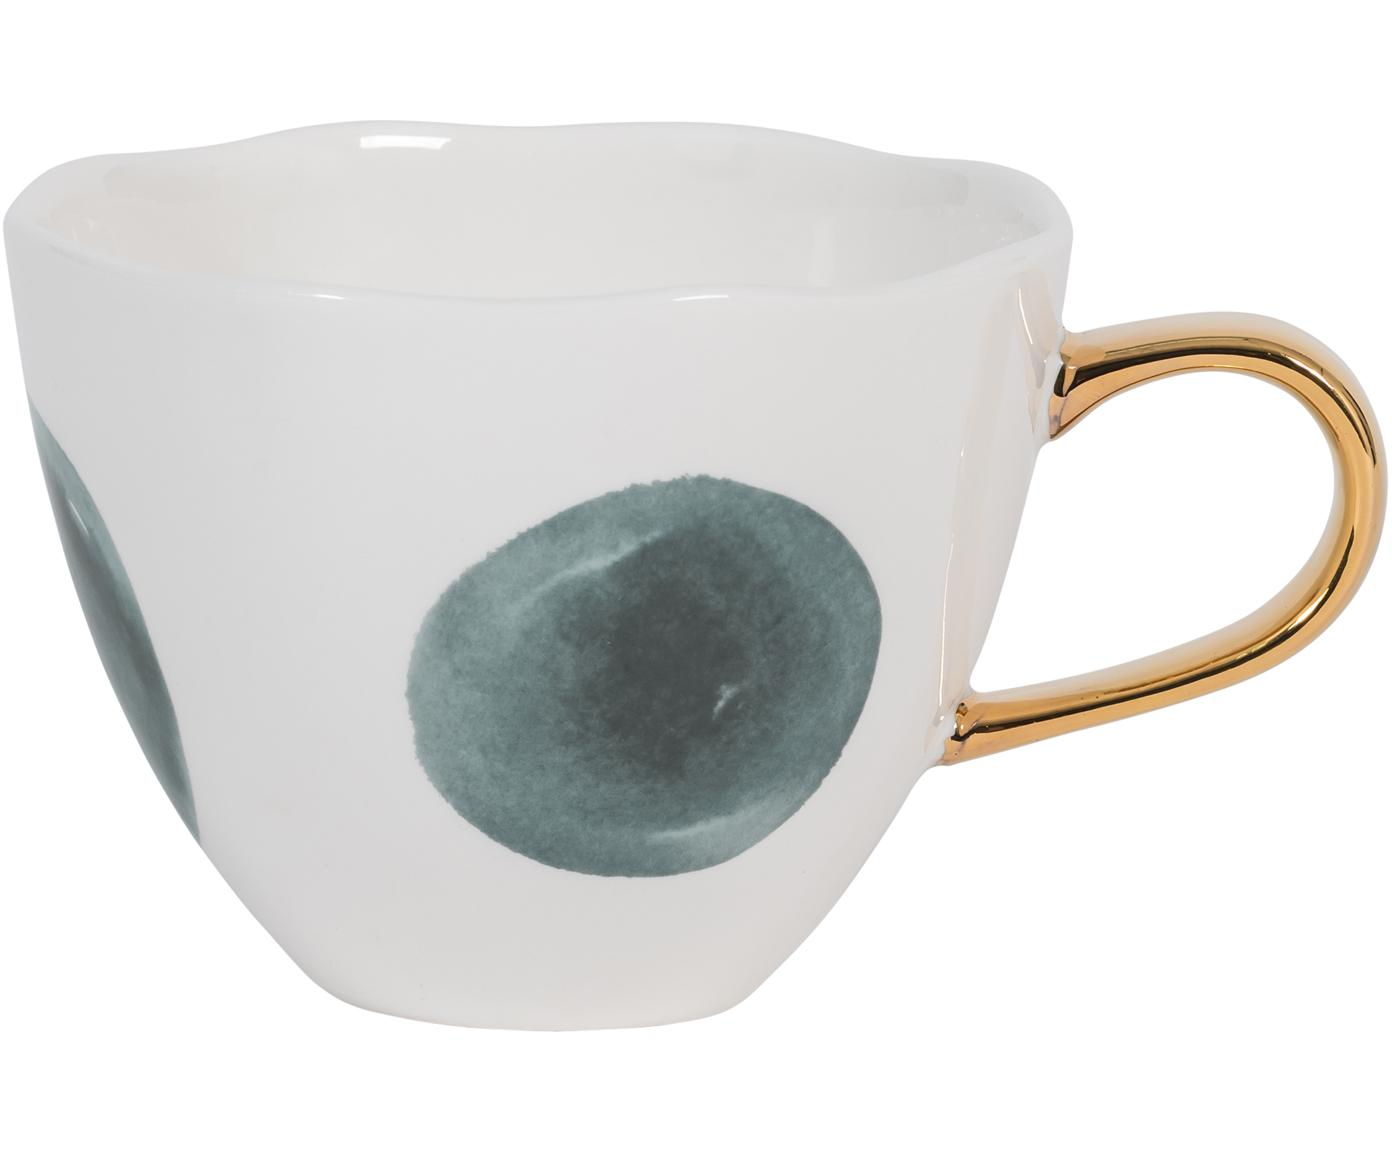 Kopje Good Morning met goudkleurige handvat, New Bone China, Wit, blauw, Ø 11 x H 8 cm